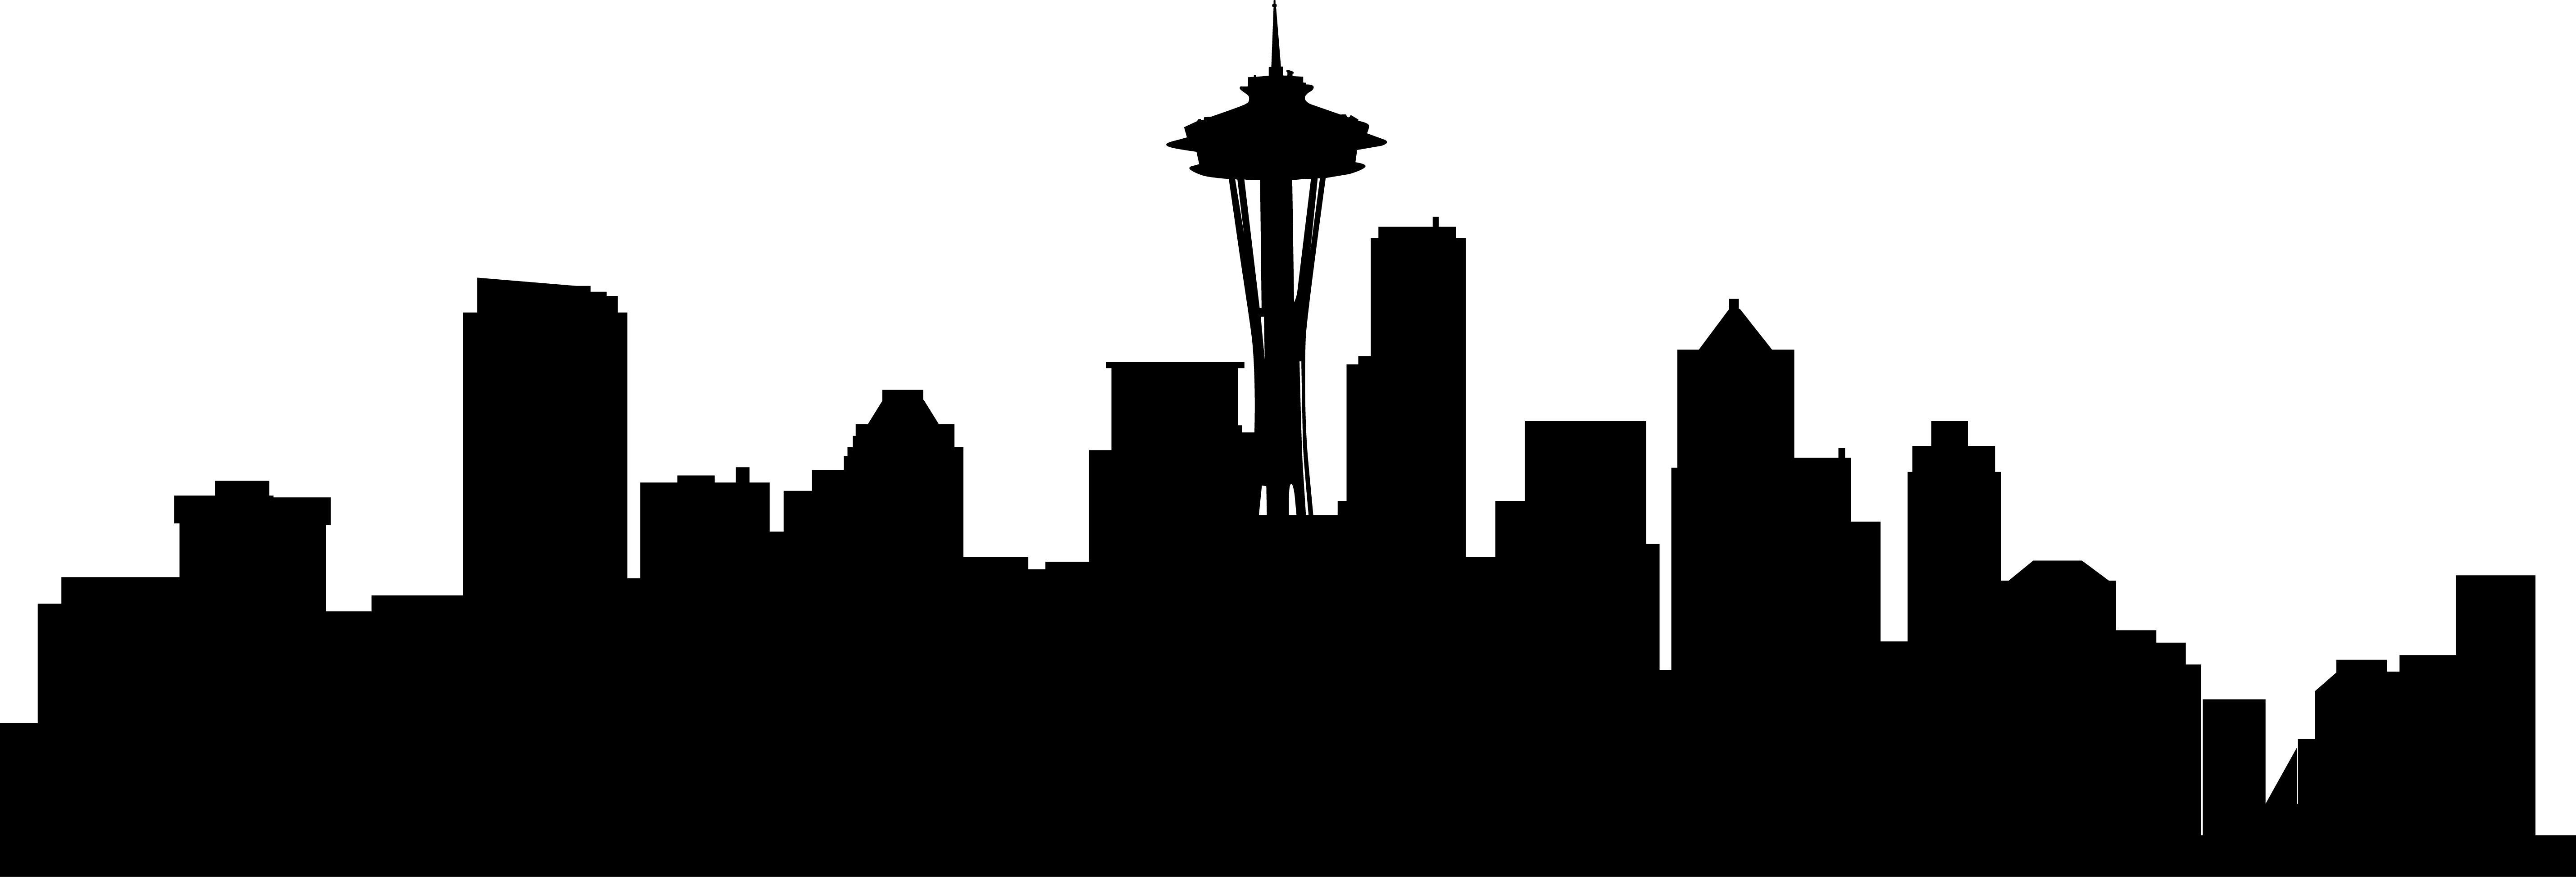 city skyline silhouette vector at getdrawings com free for rh getdrawings com city victoria tx city victorville ca